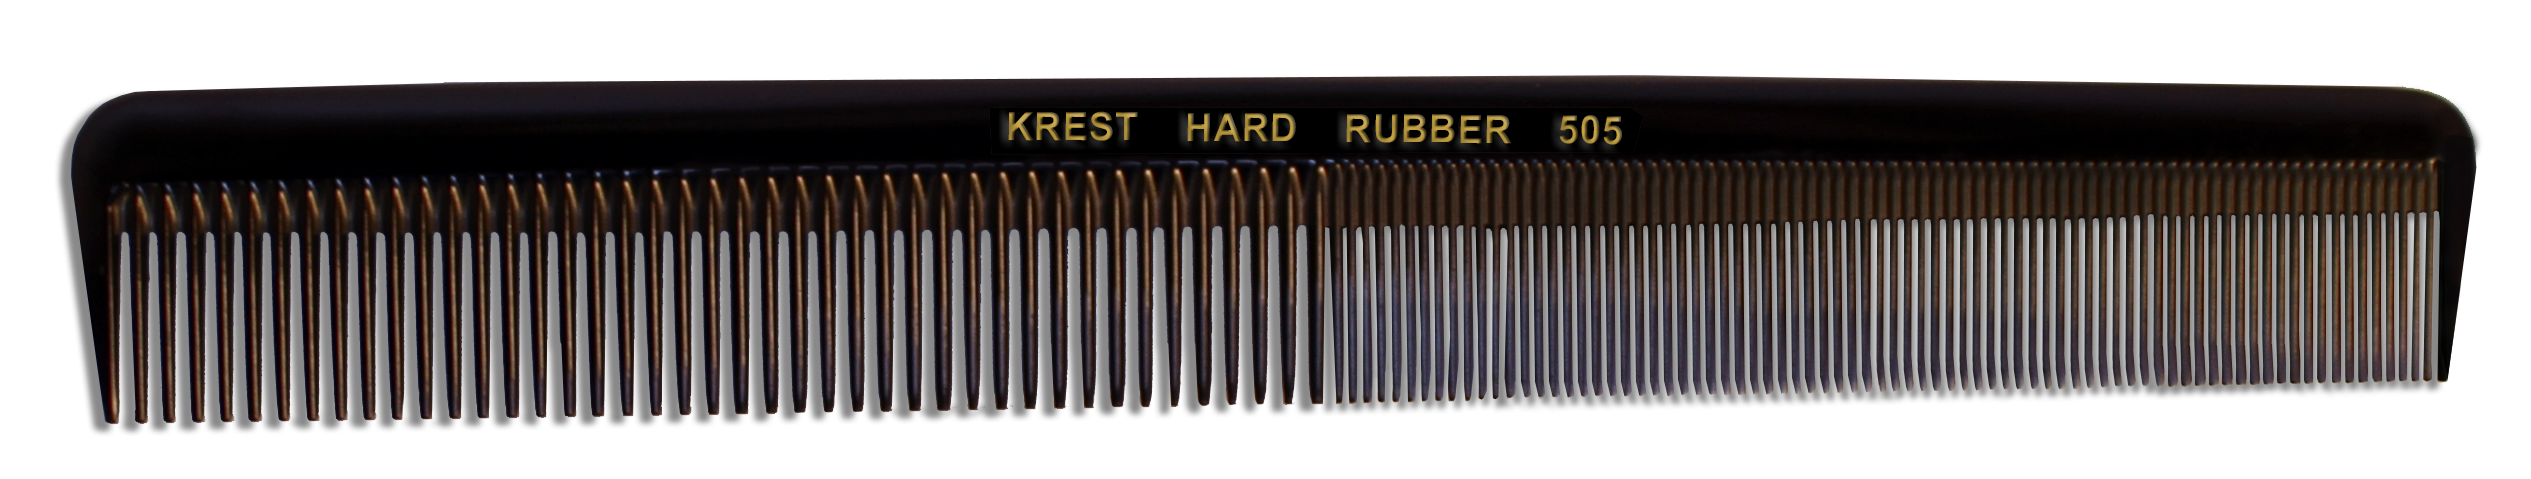 No. 505 Krest Hard Rubber Combs